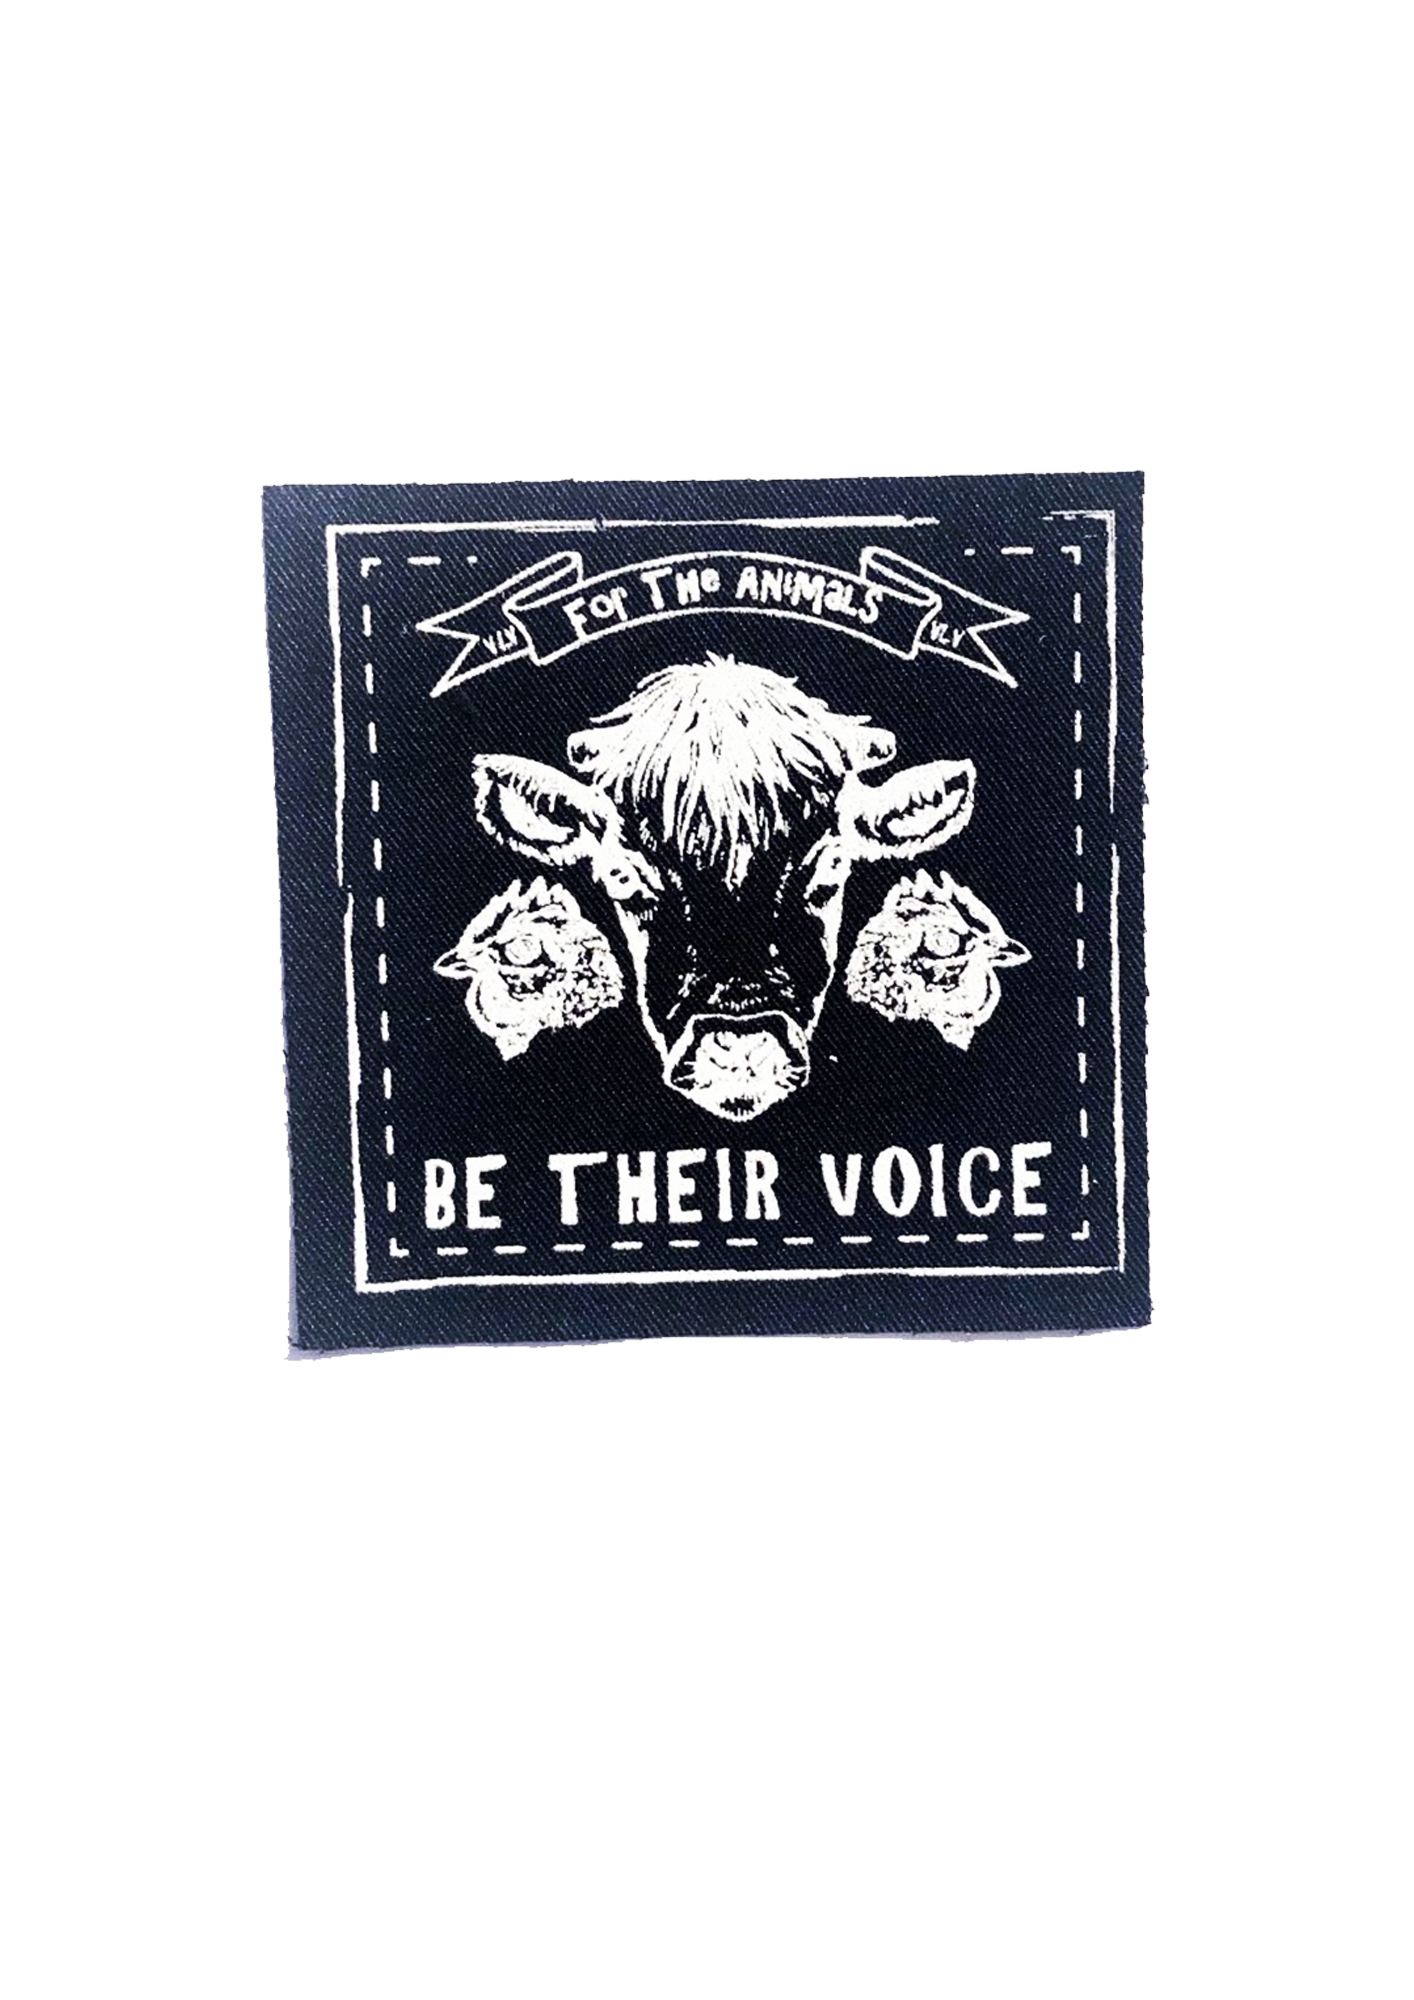 Printed Patch Square - Be Their Voice by eco ethical brand Viva La Vegan